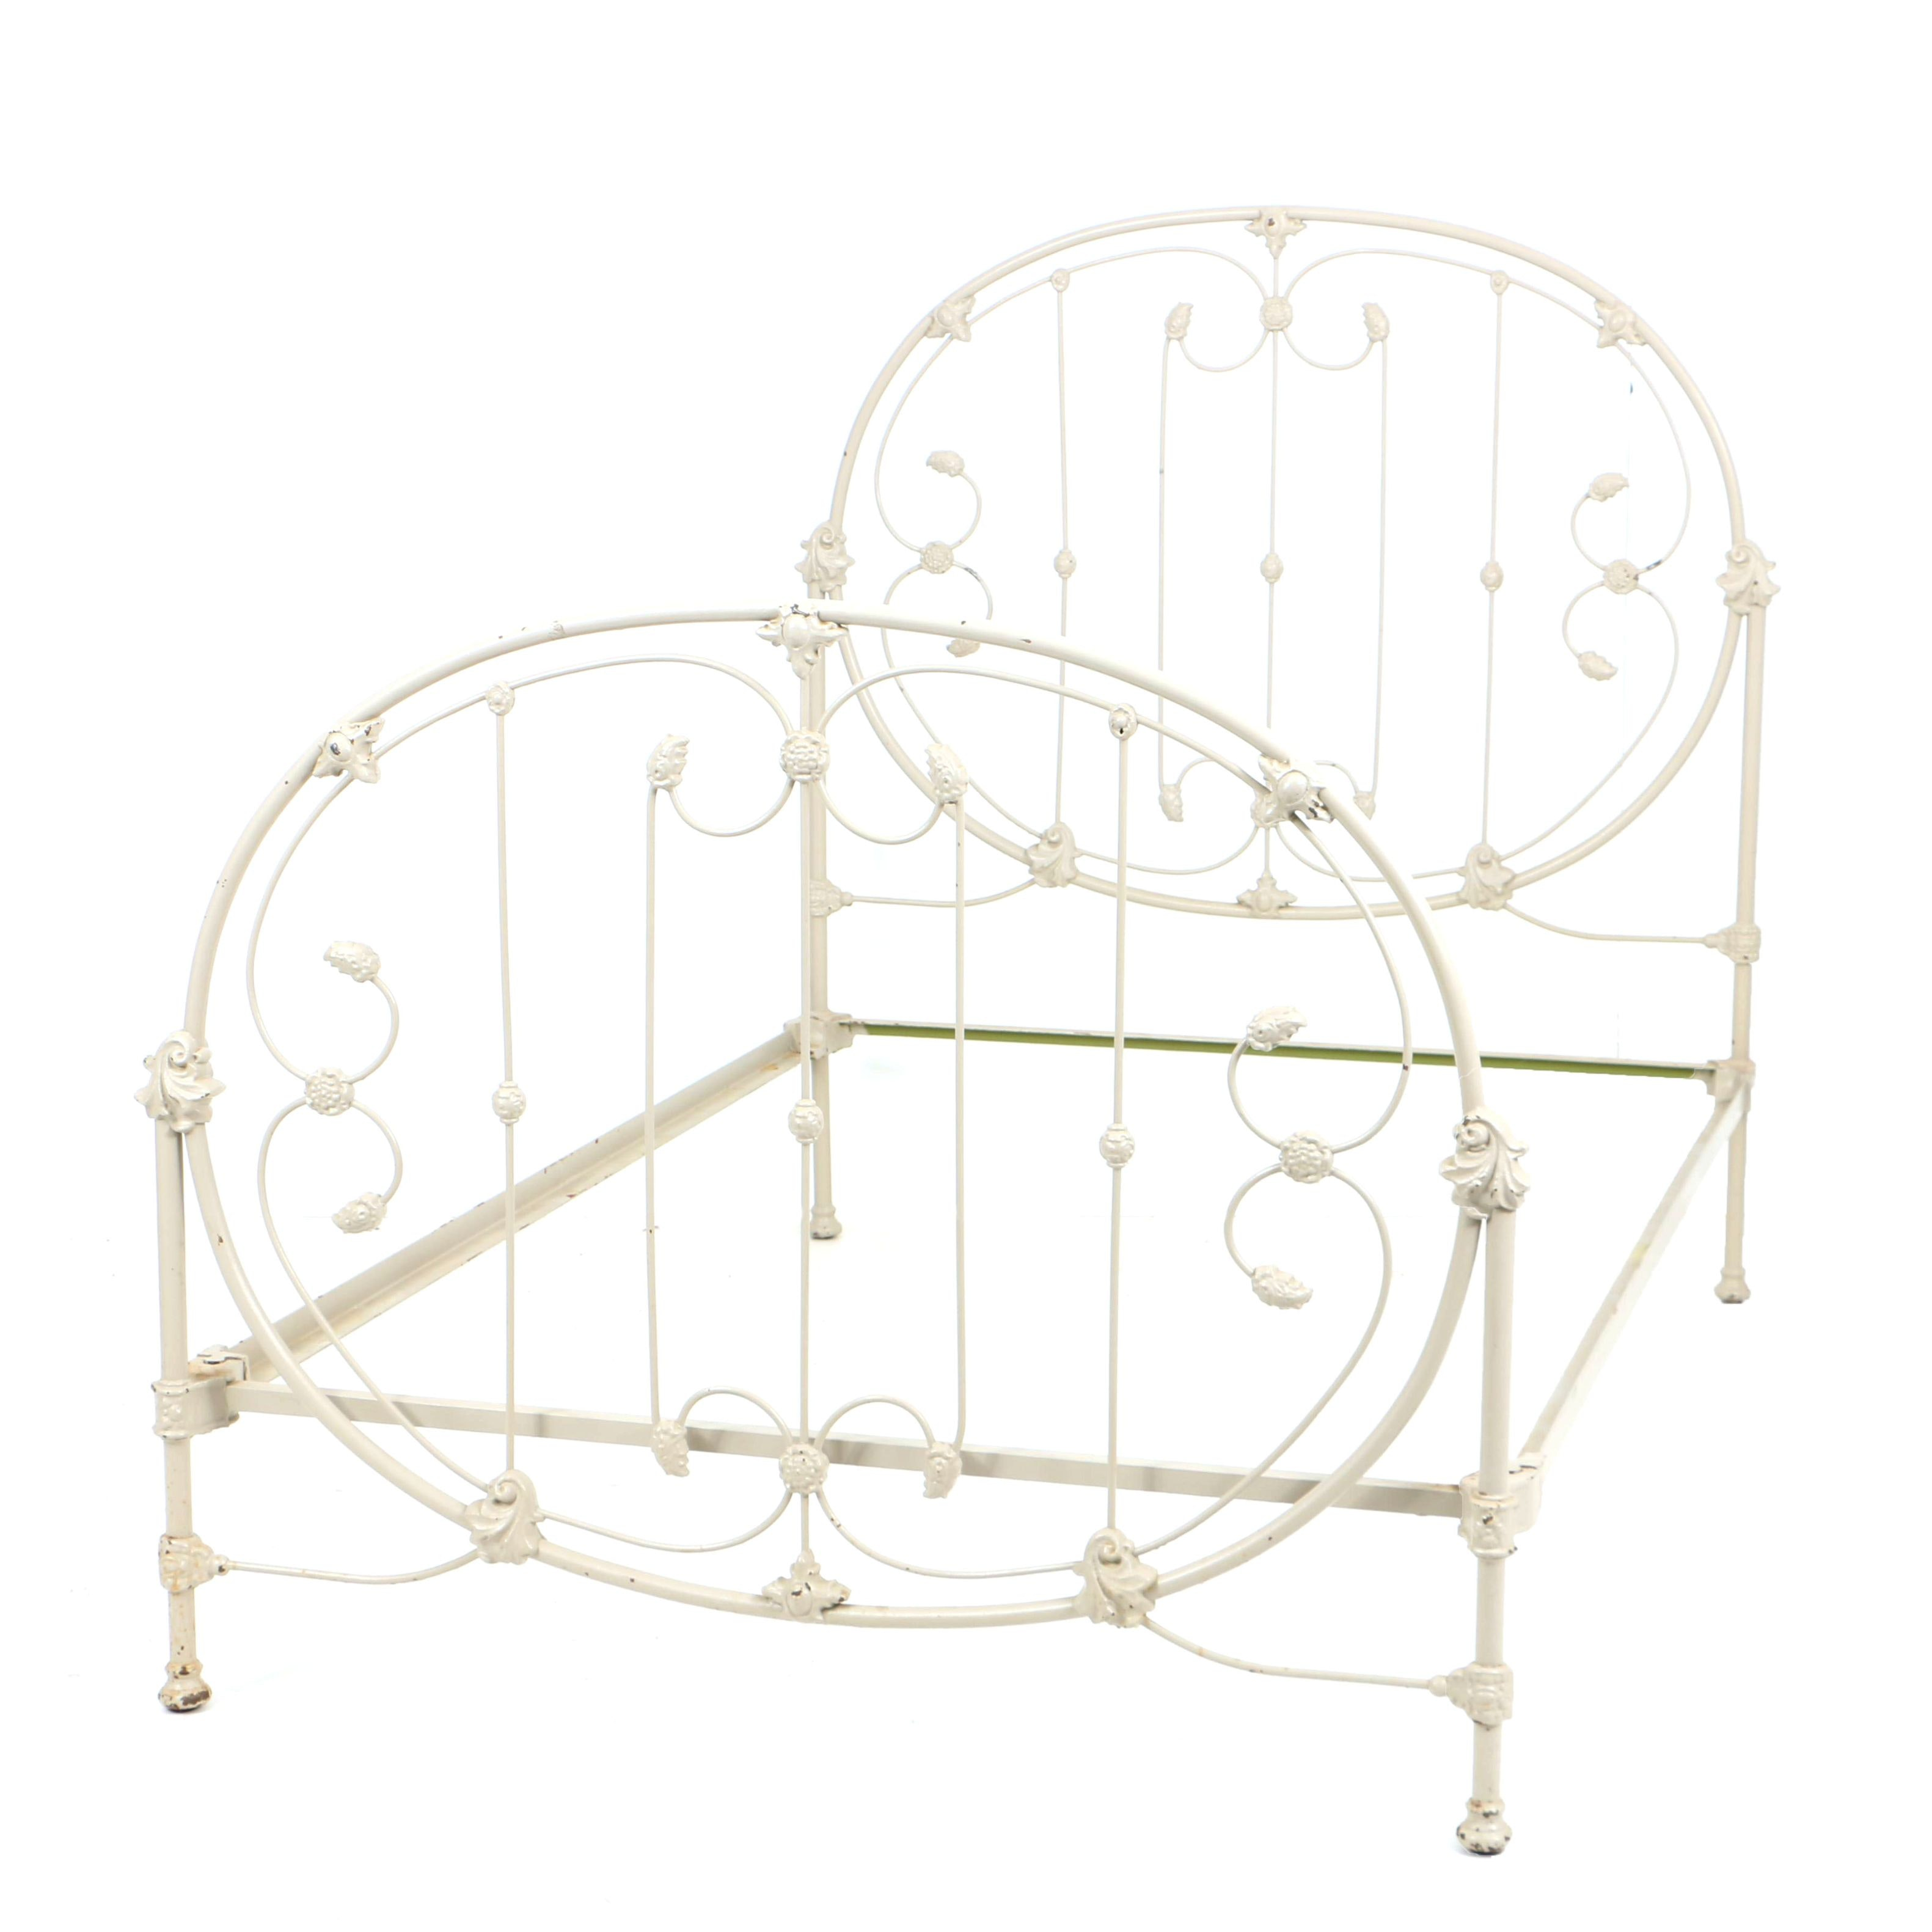 Antique Late Victorian Cast Iron Bed Frame, Circa 1900